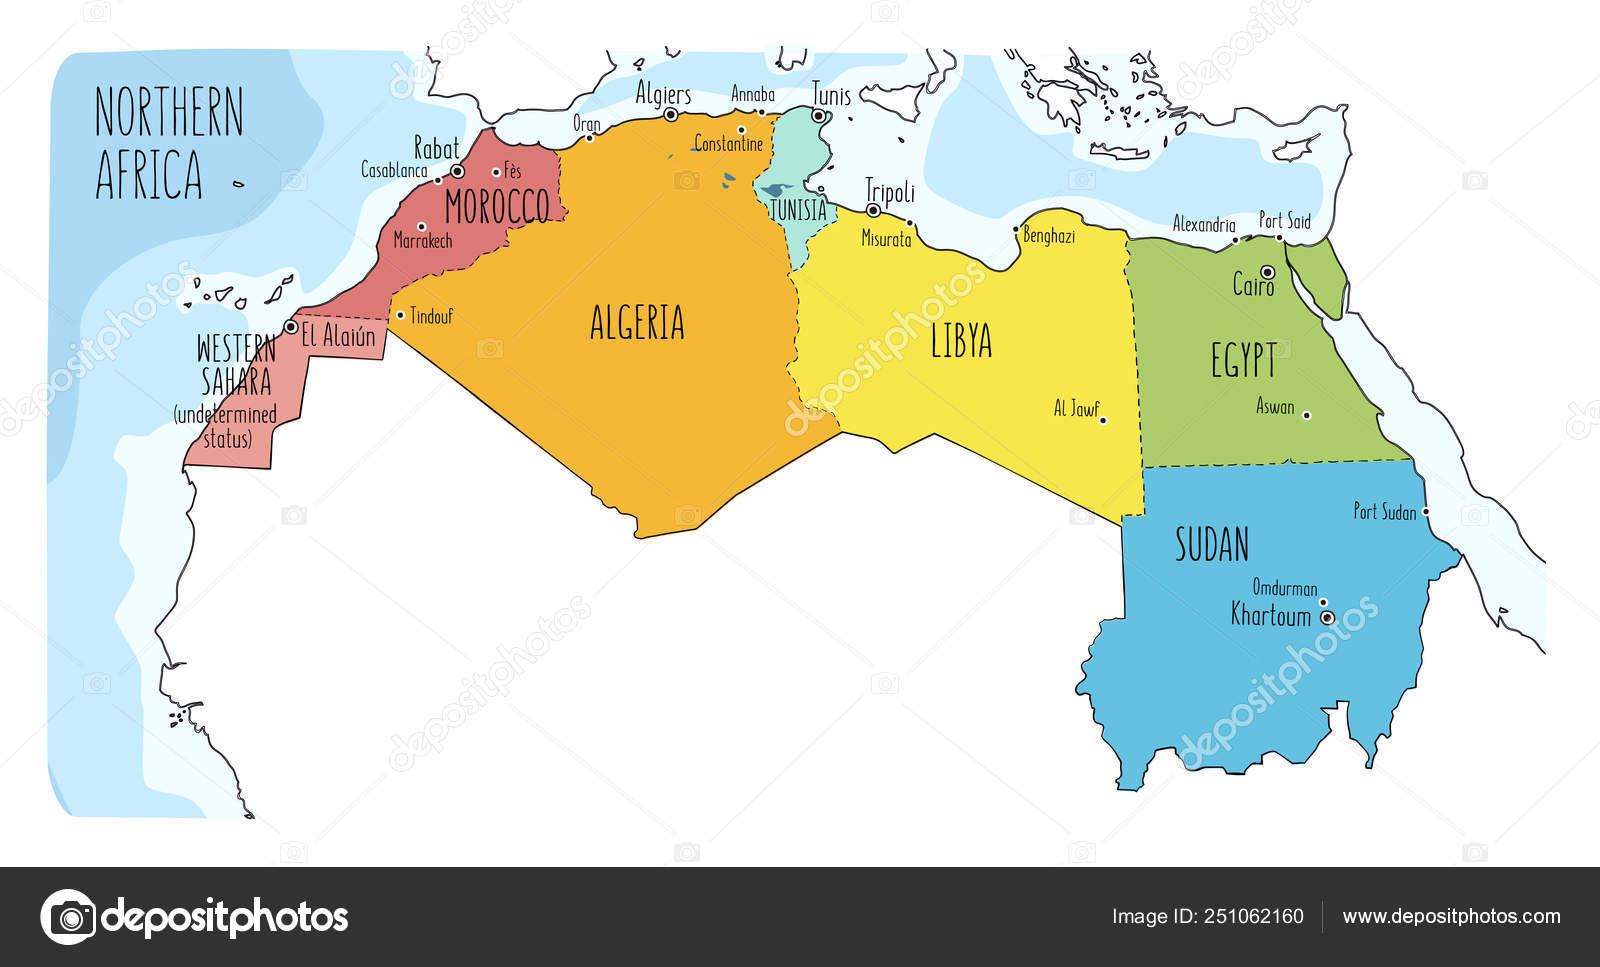 Colorful Hand Drawn Political Map Of Northern Africa With